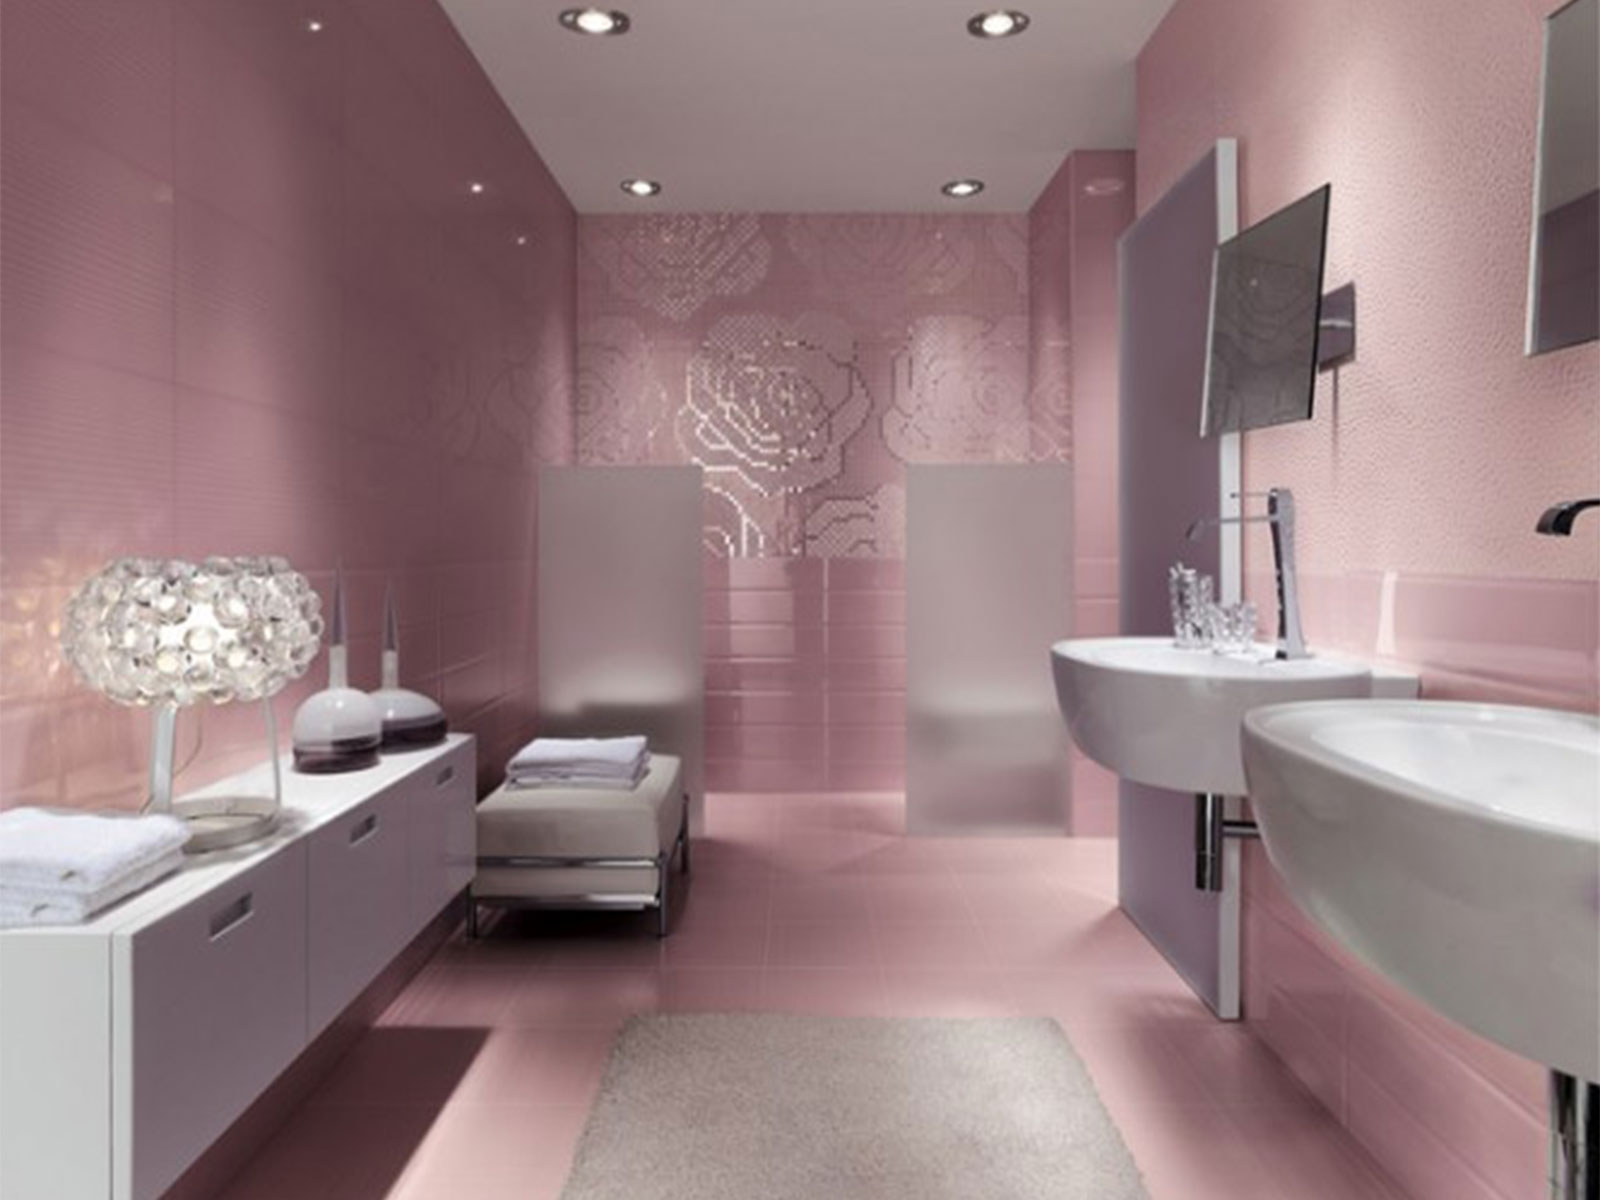 Pink Bathroom Wall Mirrors13 feminine bathroom furniture and appliances ideas bathroom2 pink